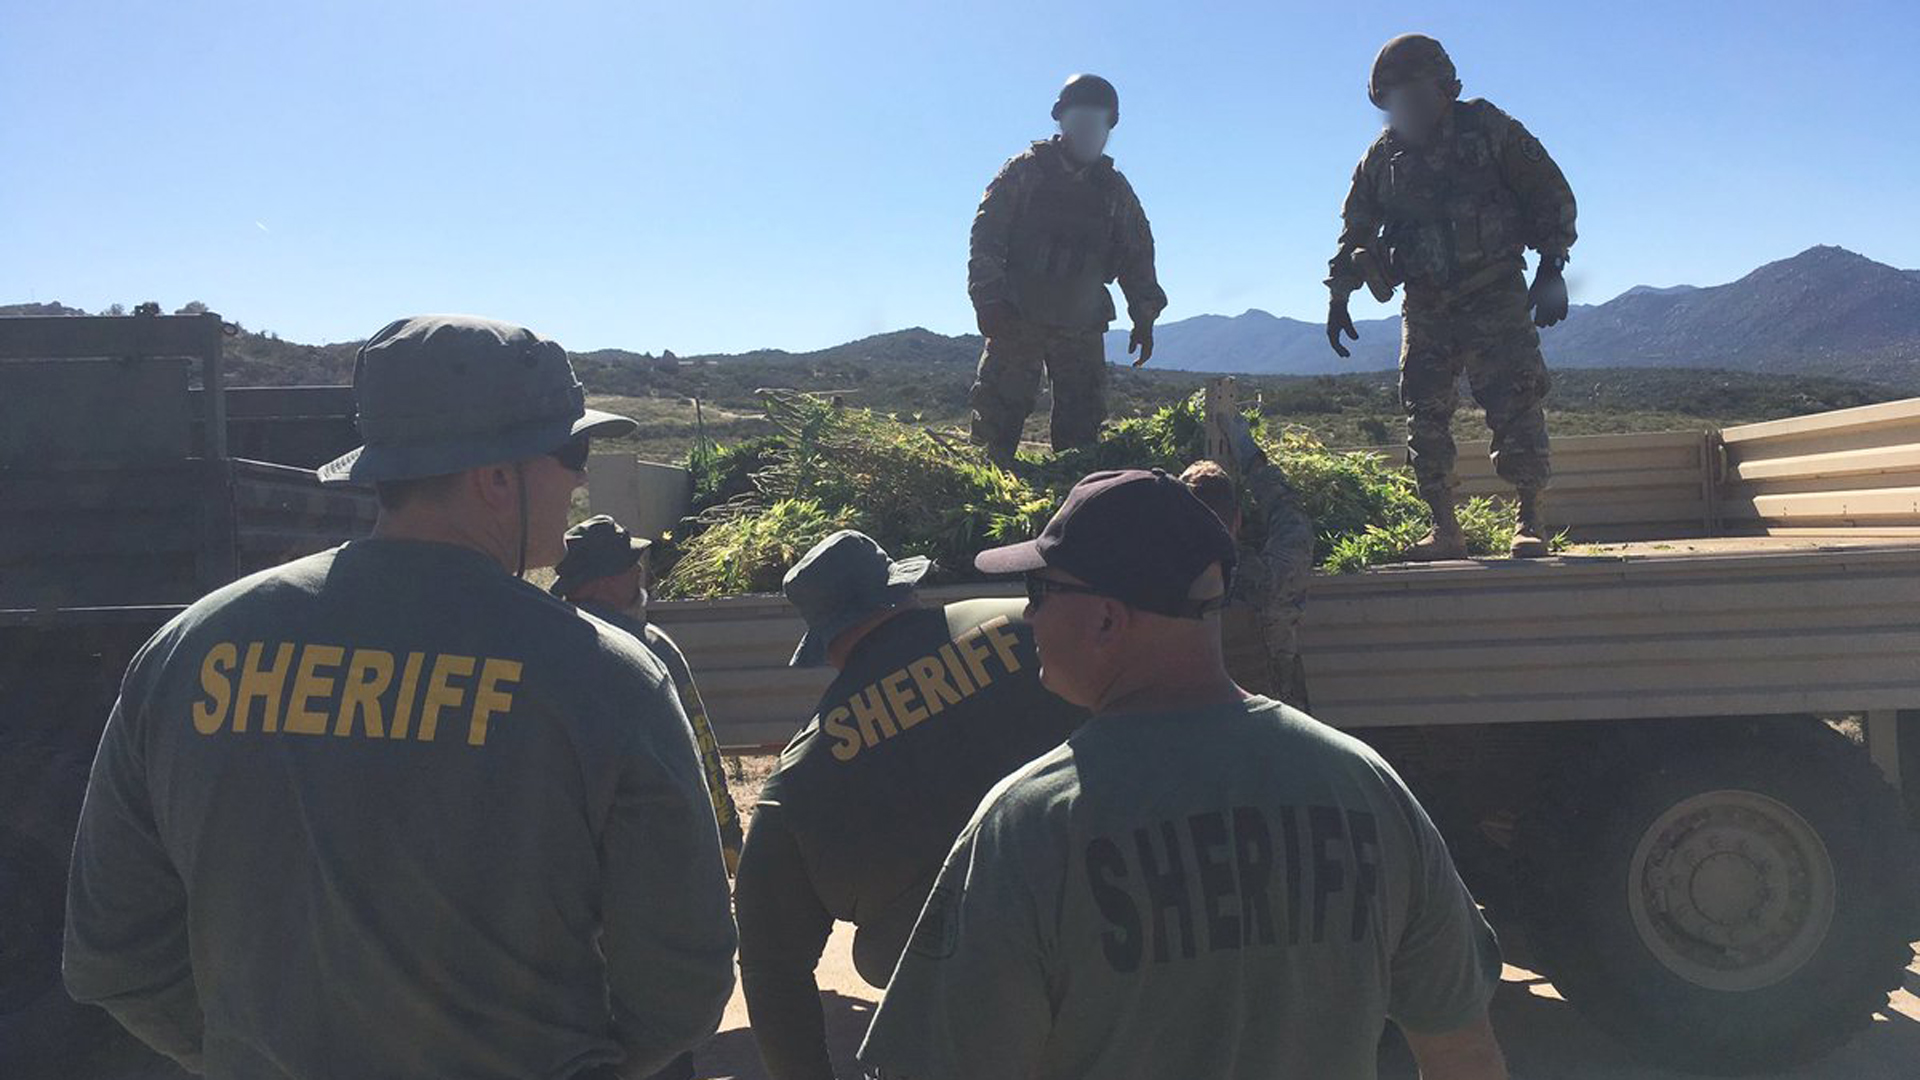 The Riverside County Sheriff's Department released this photo of the raid in Anza Valley on June 6, 2019.